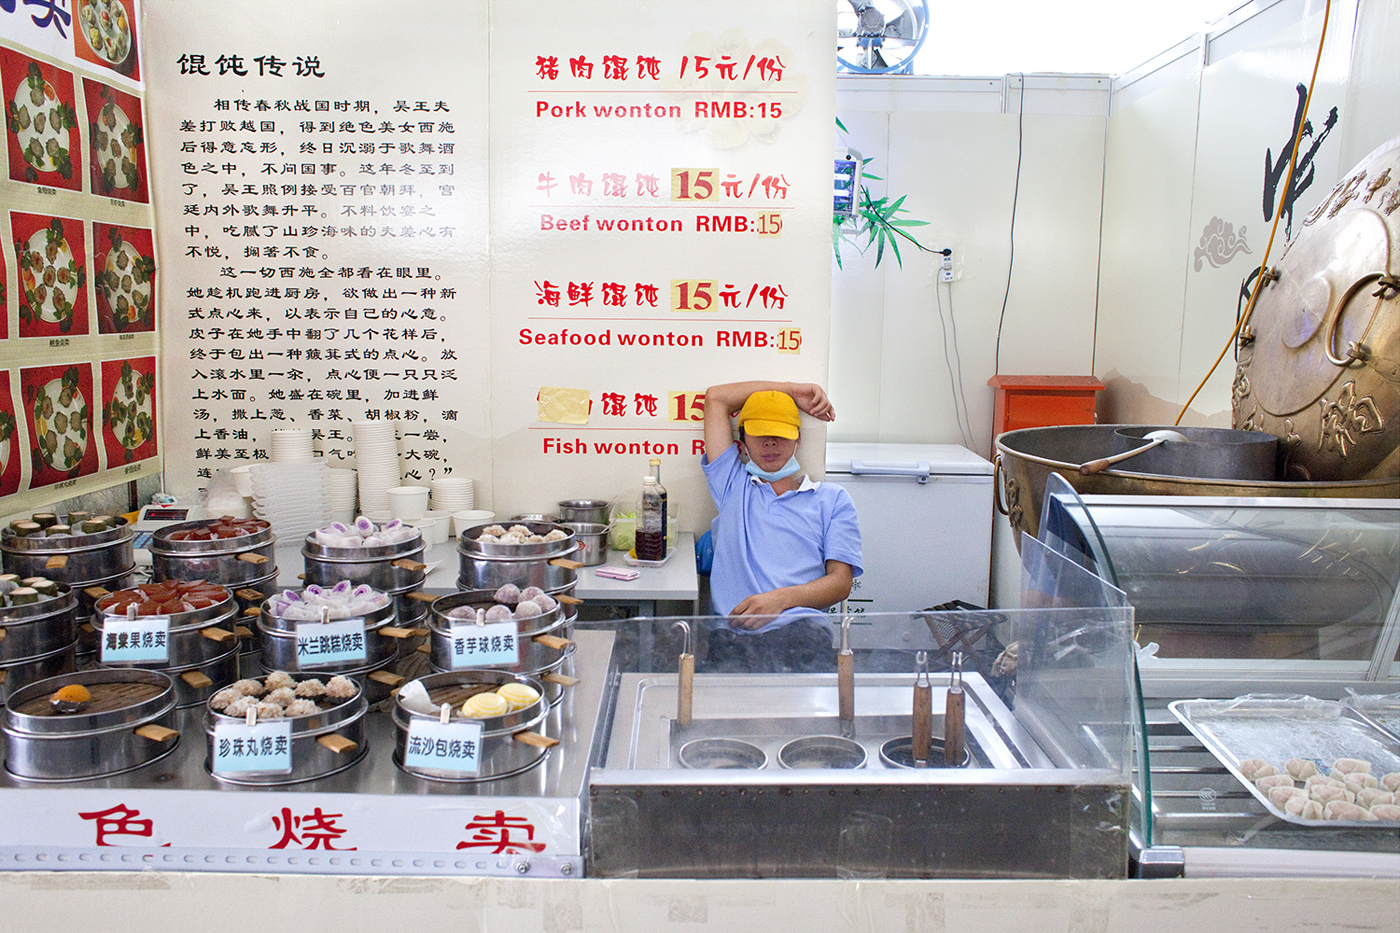 Hitzenberger_Chinese_Fast_Food_04.jpg